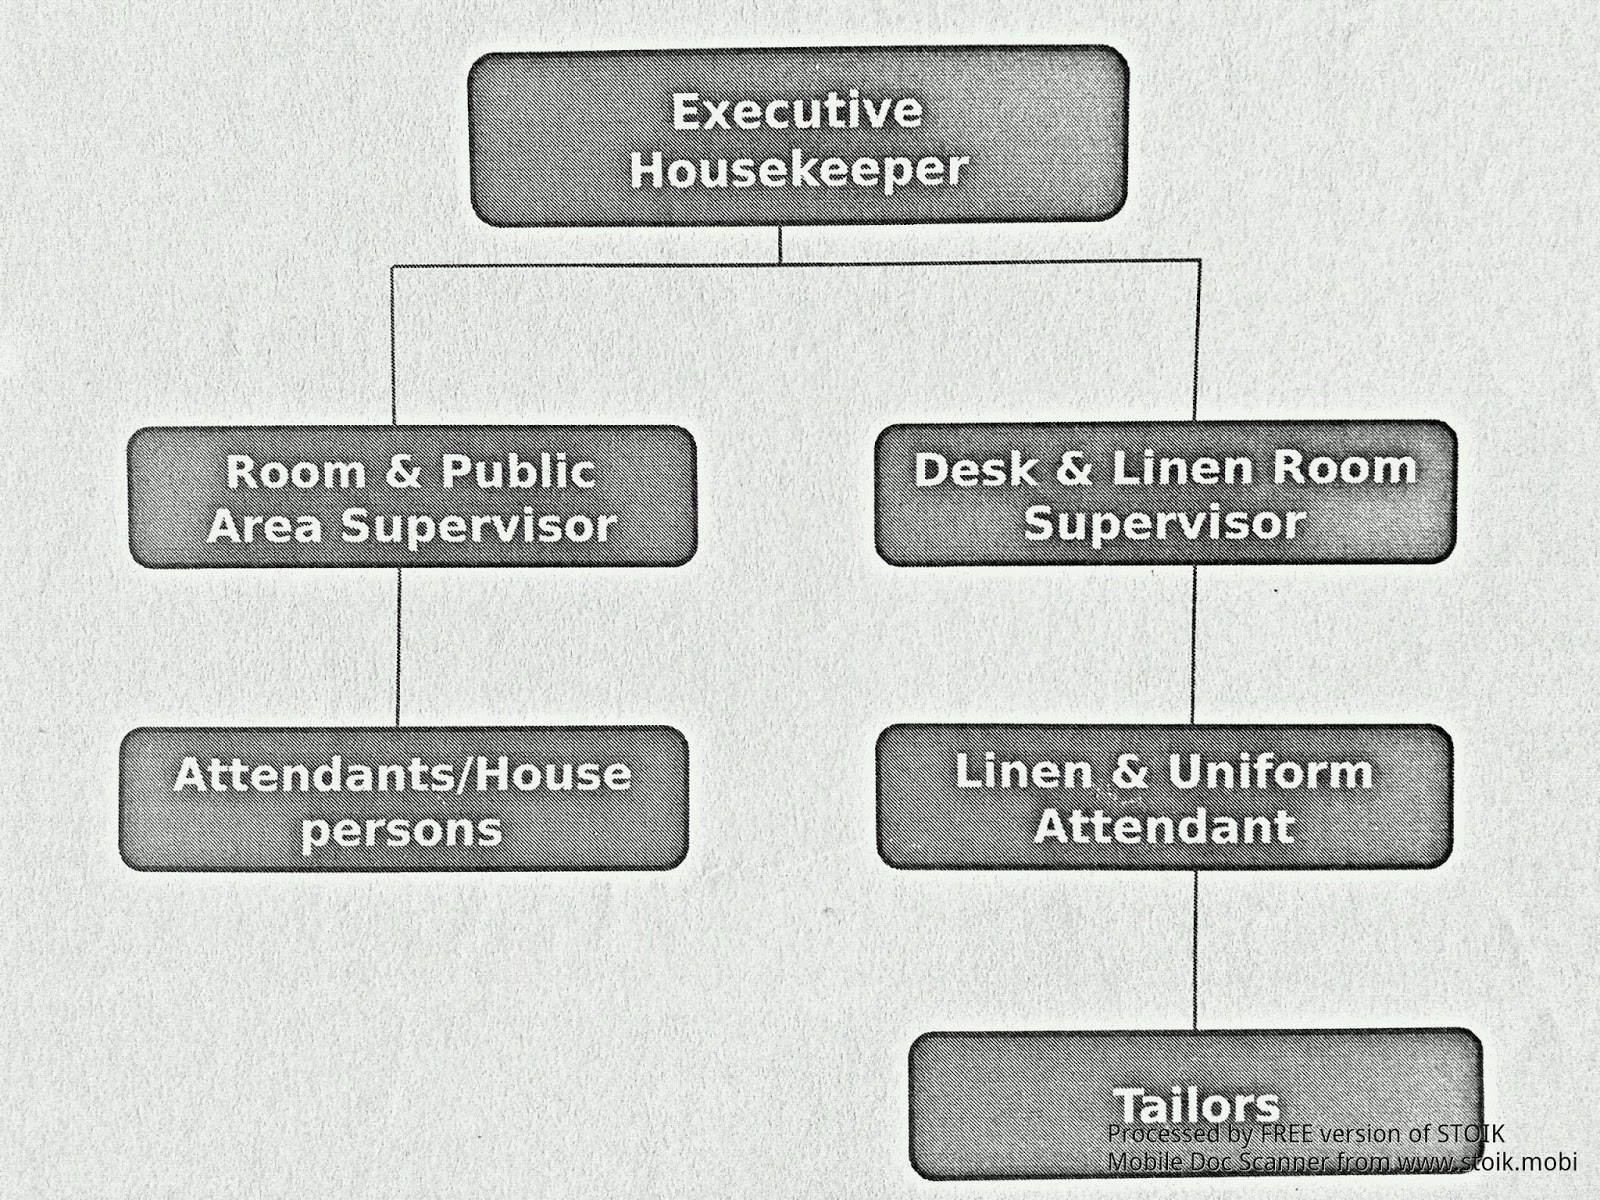 Organizational structure of   department also house keeping notes rh paramjamwalspot